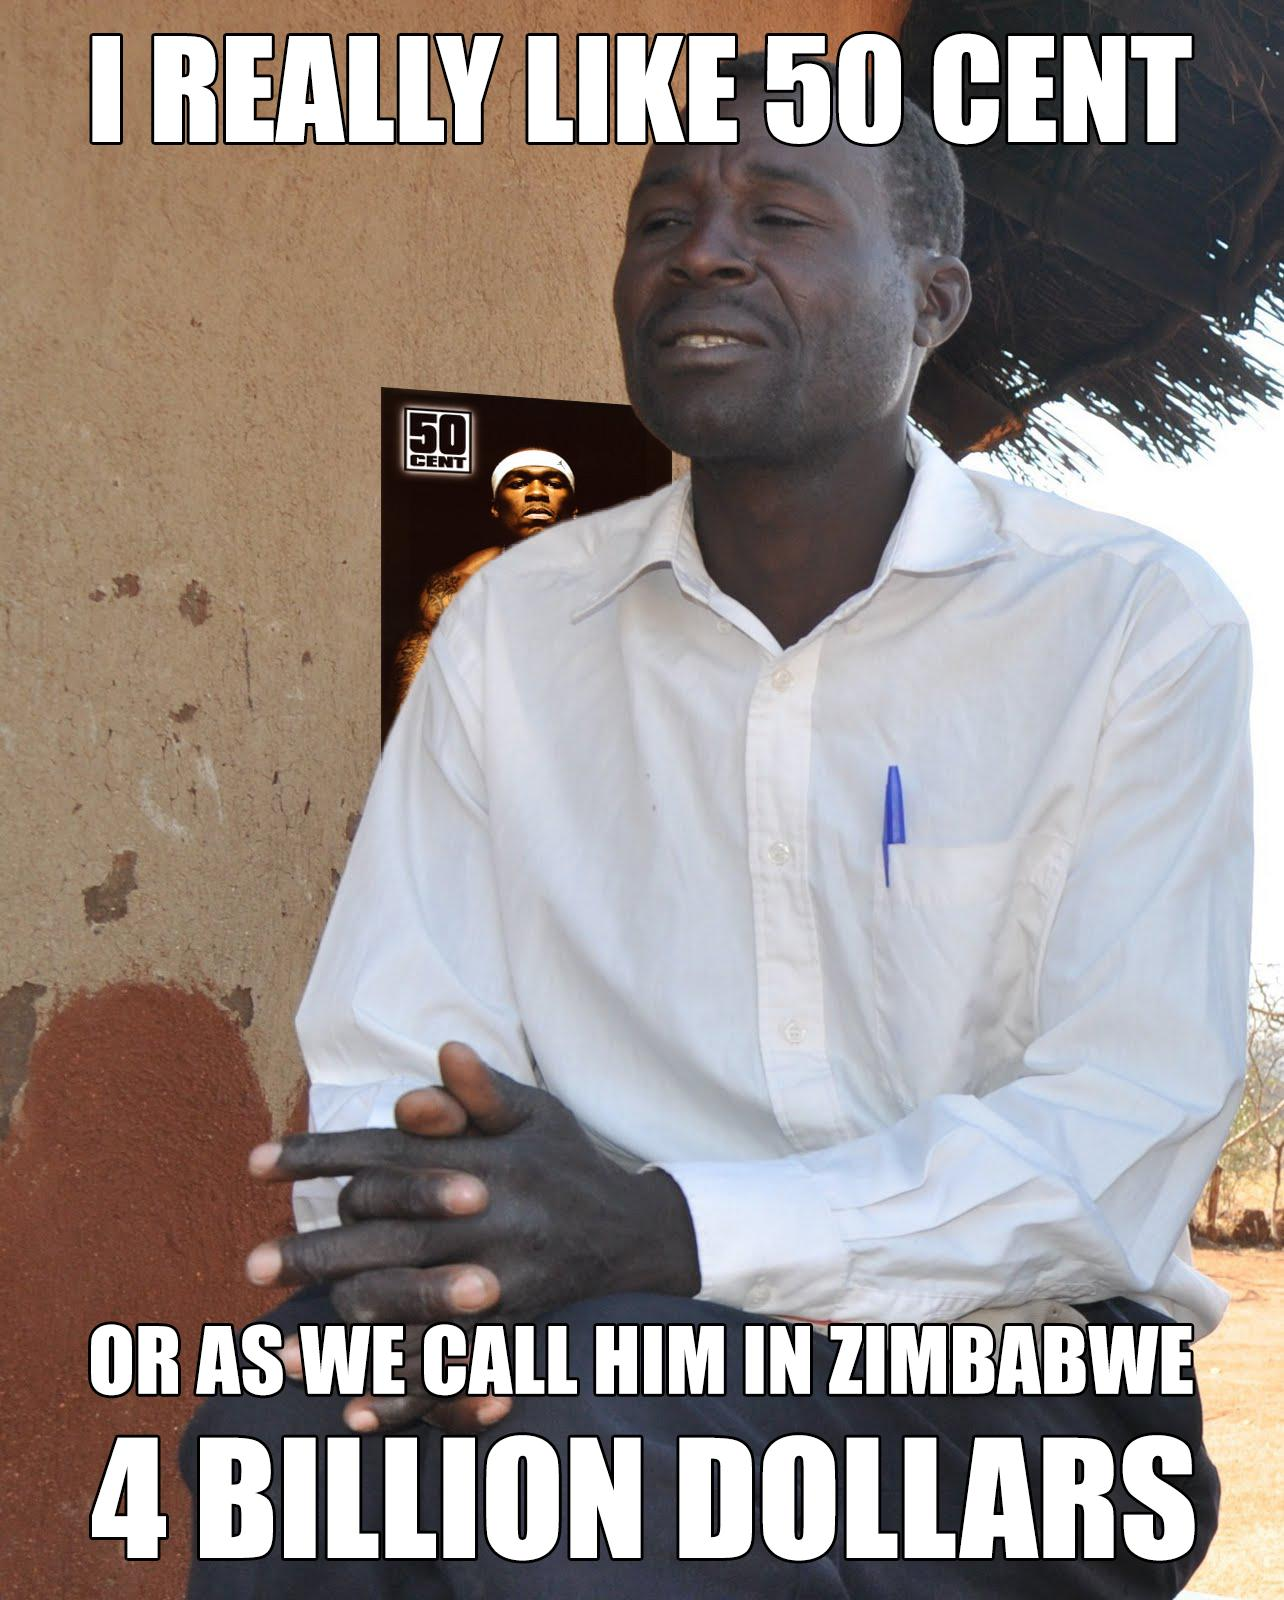 089 50 cent in zimbabwe 50 cent know your meme,50 Cent Meme